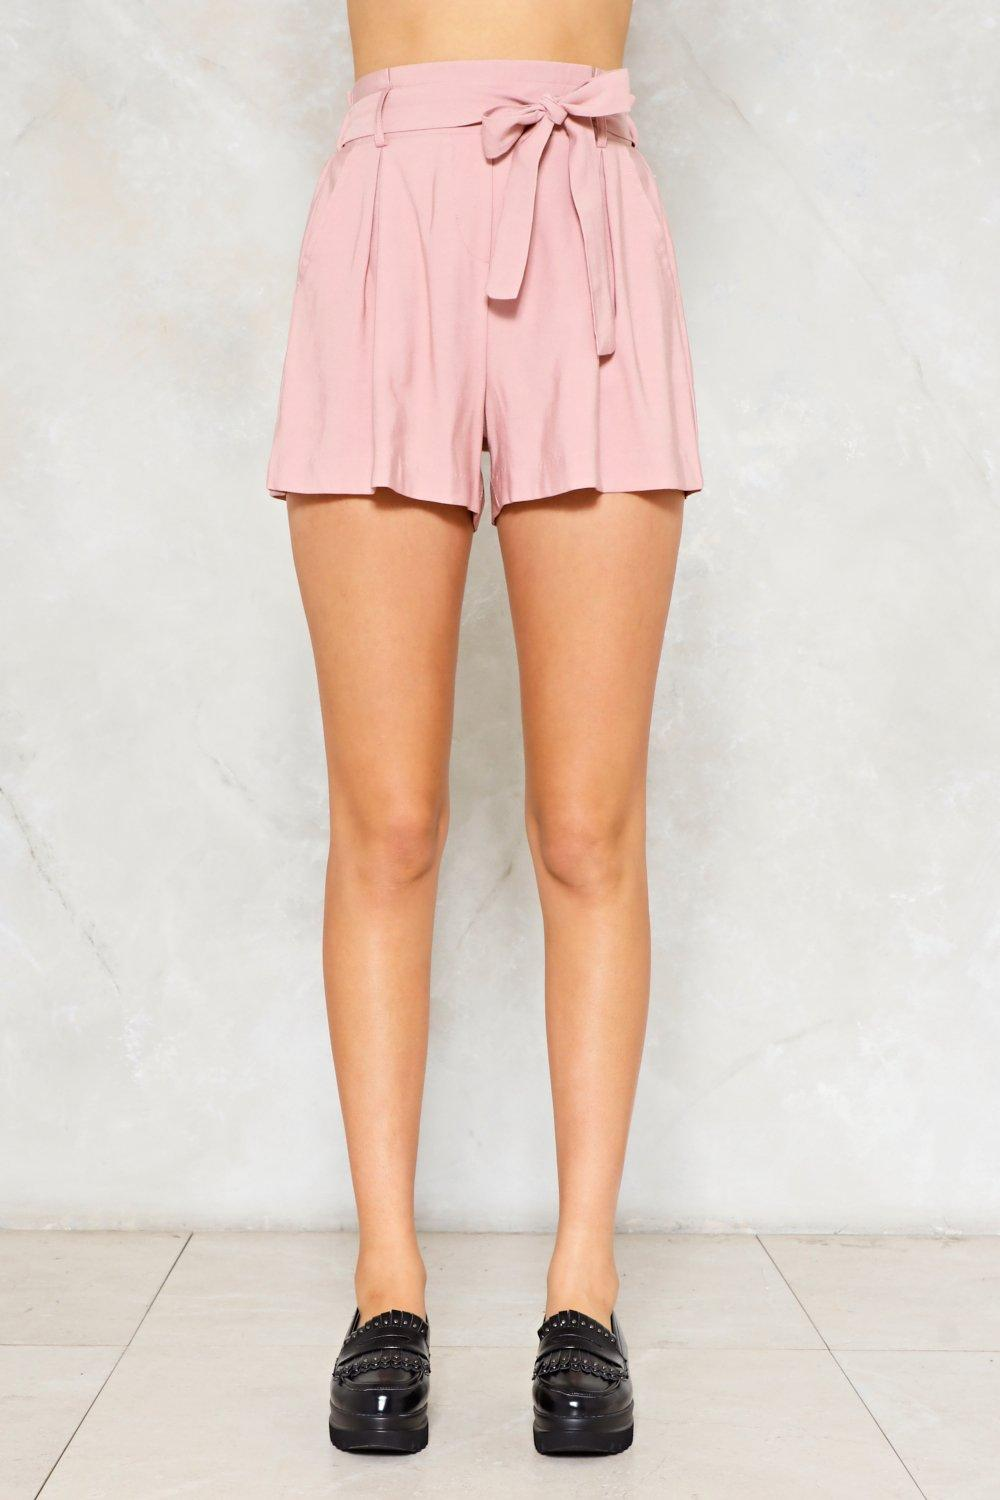 e08a763dbf Working for the Weekend High-Waisted Shorts | Shop Clothes at Nasty Gal!